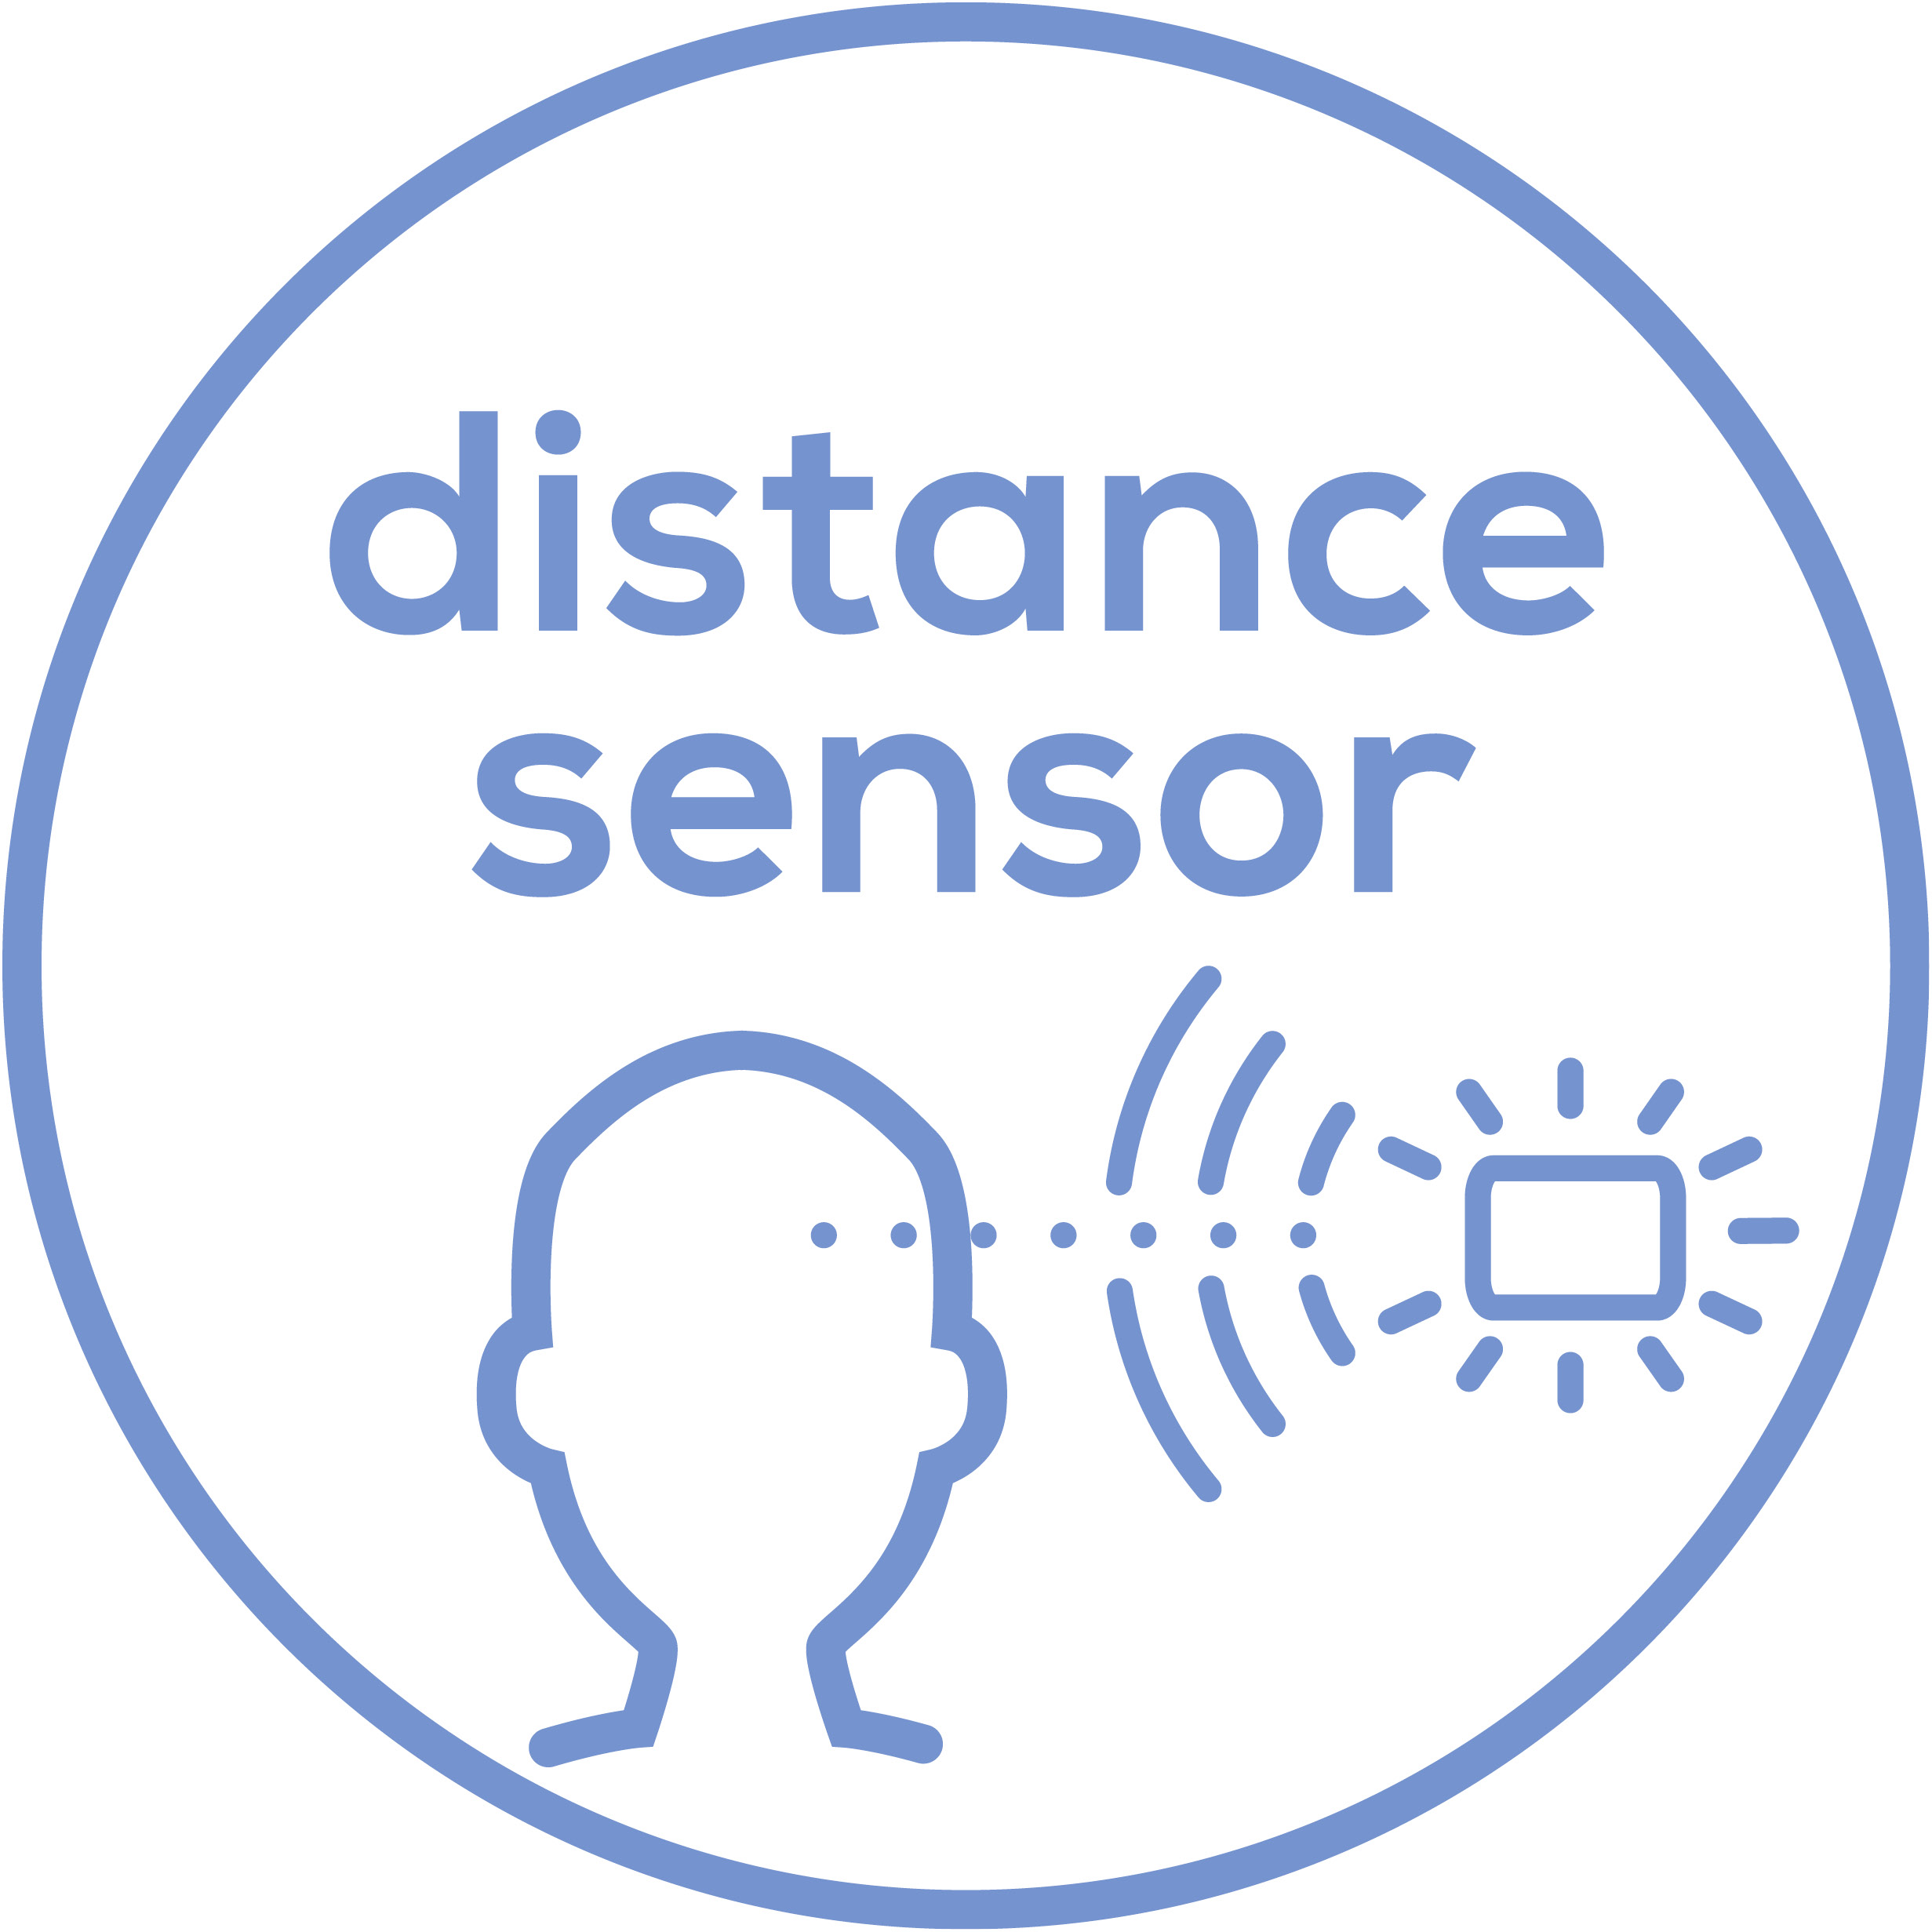 Distance sensor This product has a distance sensor.